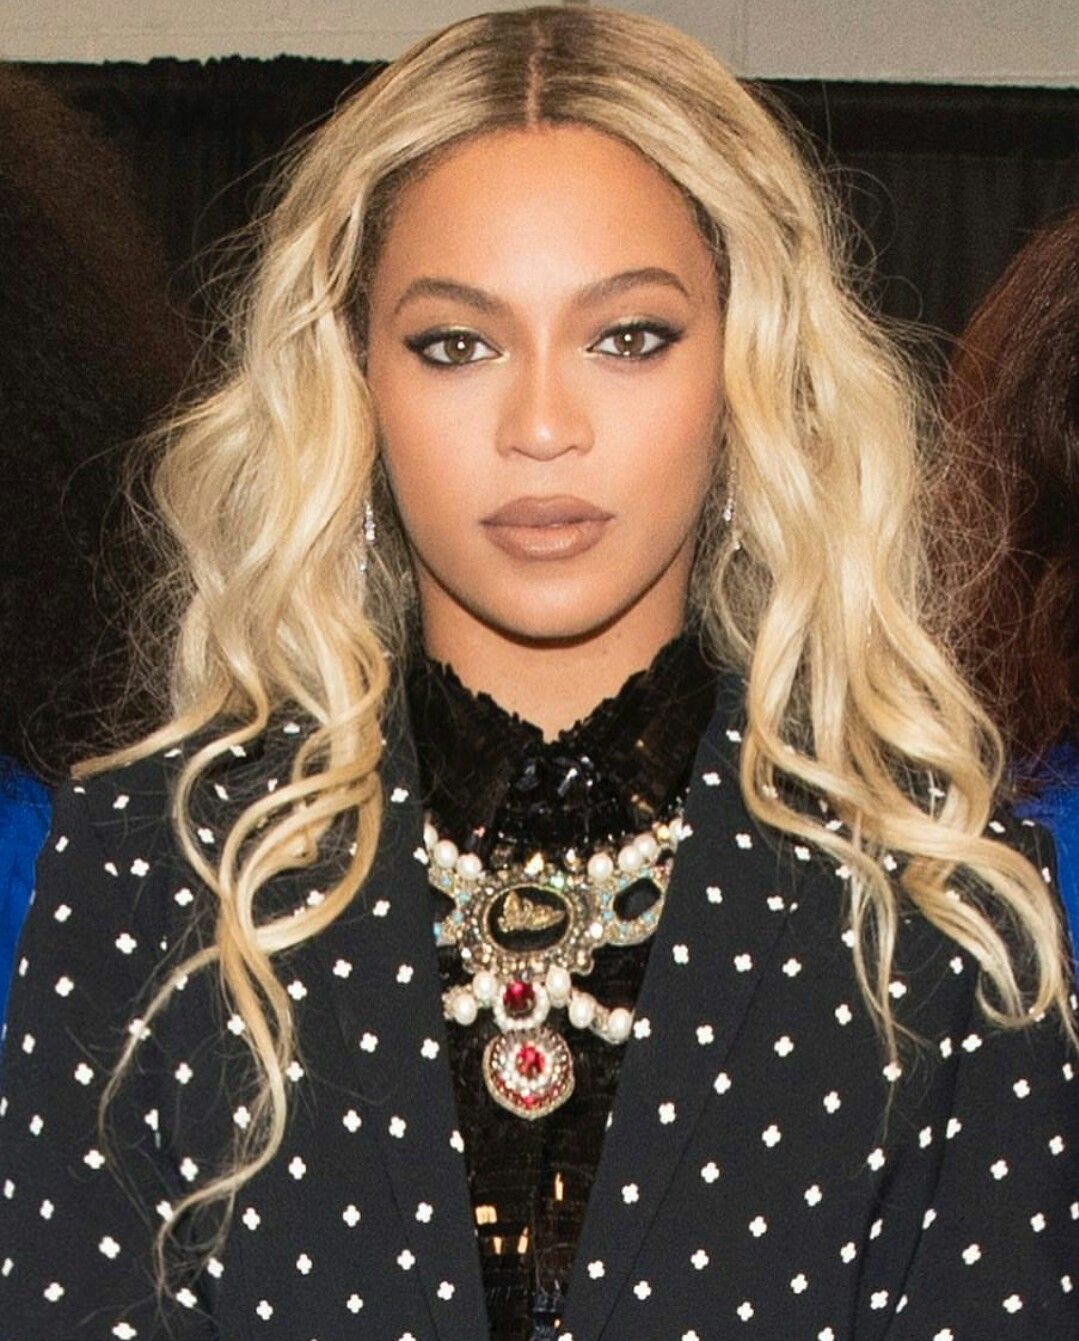 Look at this gorgeous human being! Beyoncé for president!.<3